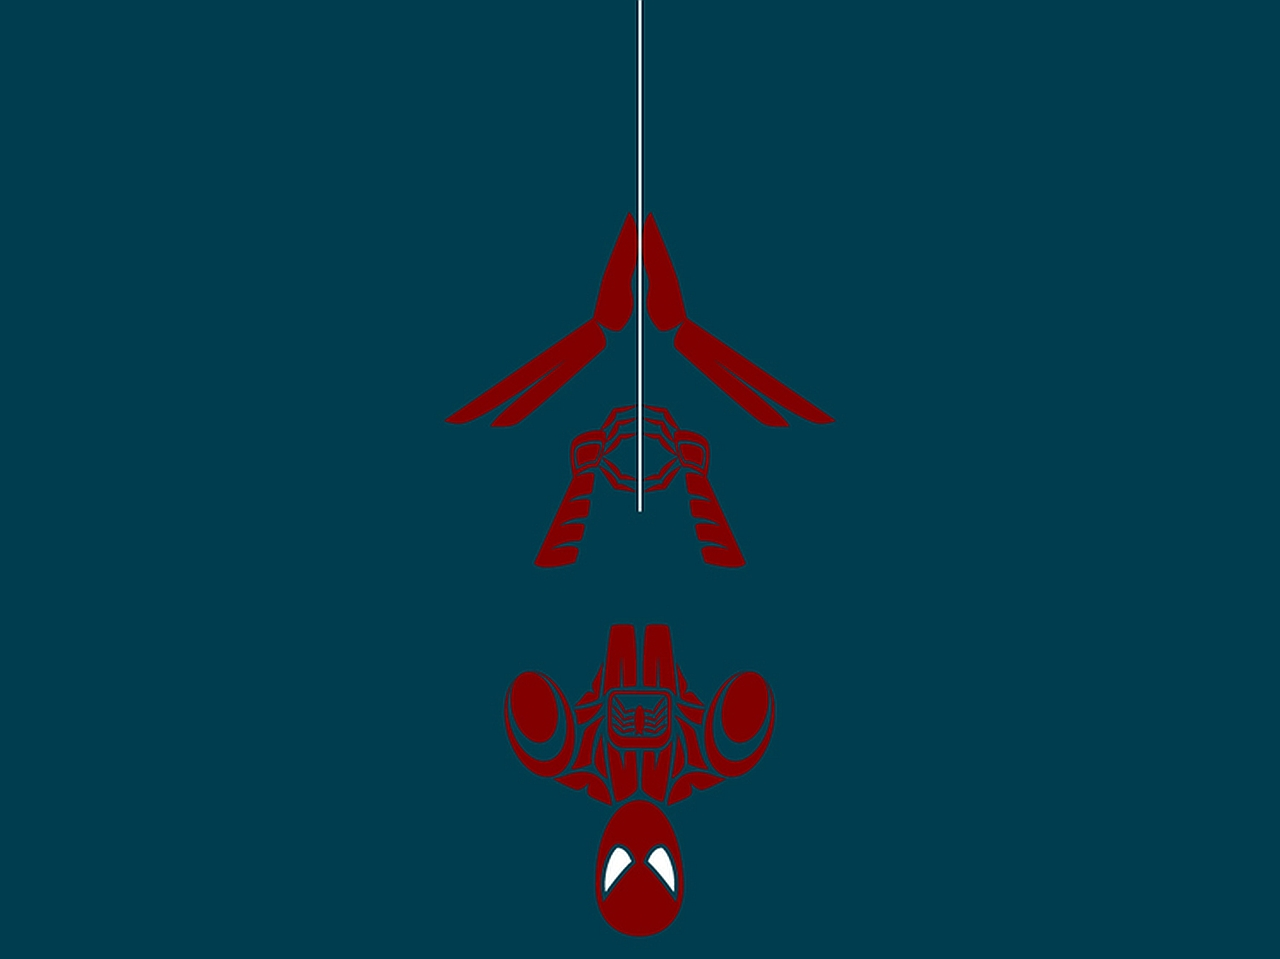 Spiderman Iphone Wallpaper Comics spider man wallpaper 1280x959